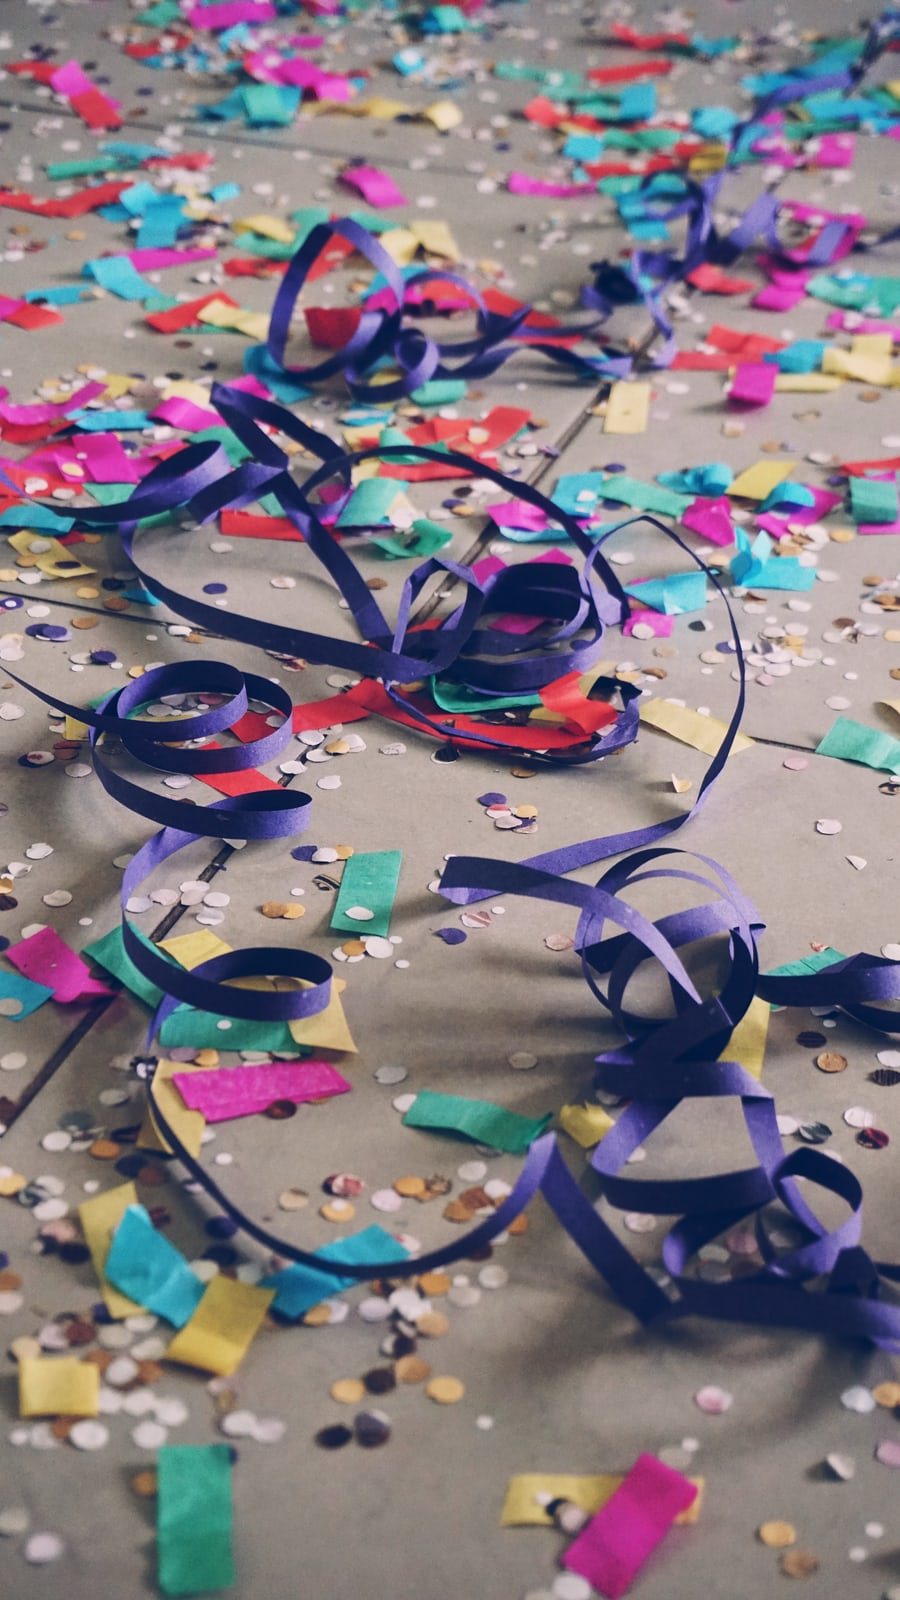 different types of confetti scattered on the floor